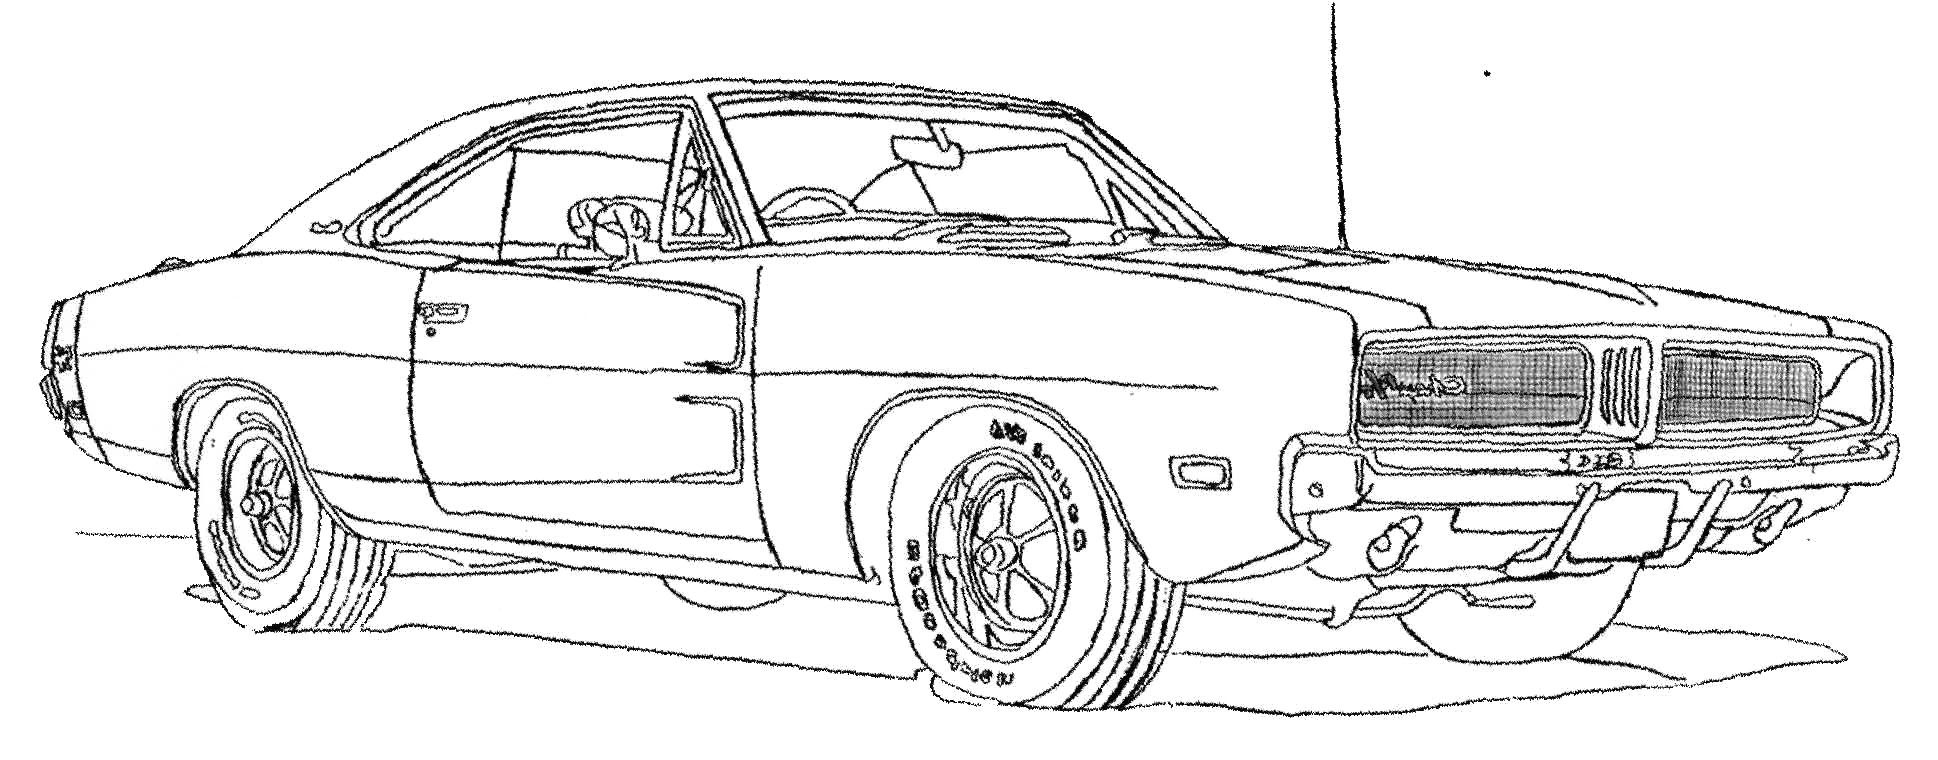 dodge car rx 1500 coloring page